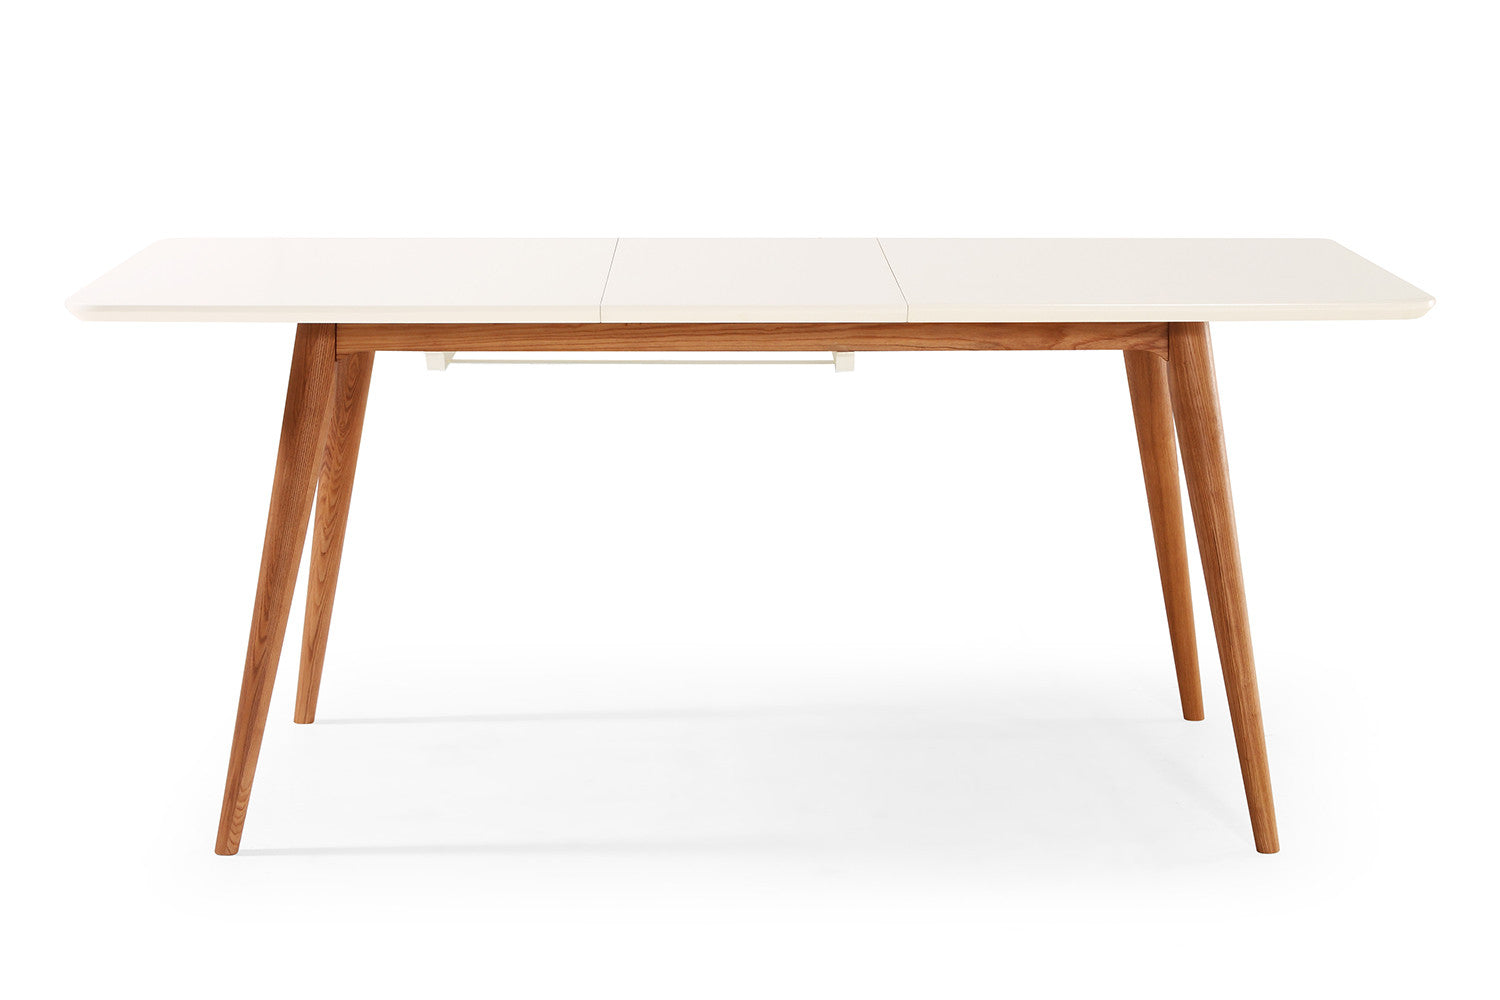 Table de salle manger extensible scandinave wyna dewarens - Meuble table extensible ...